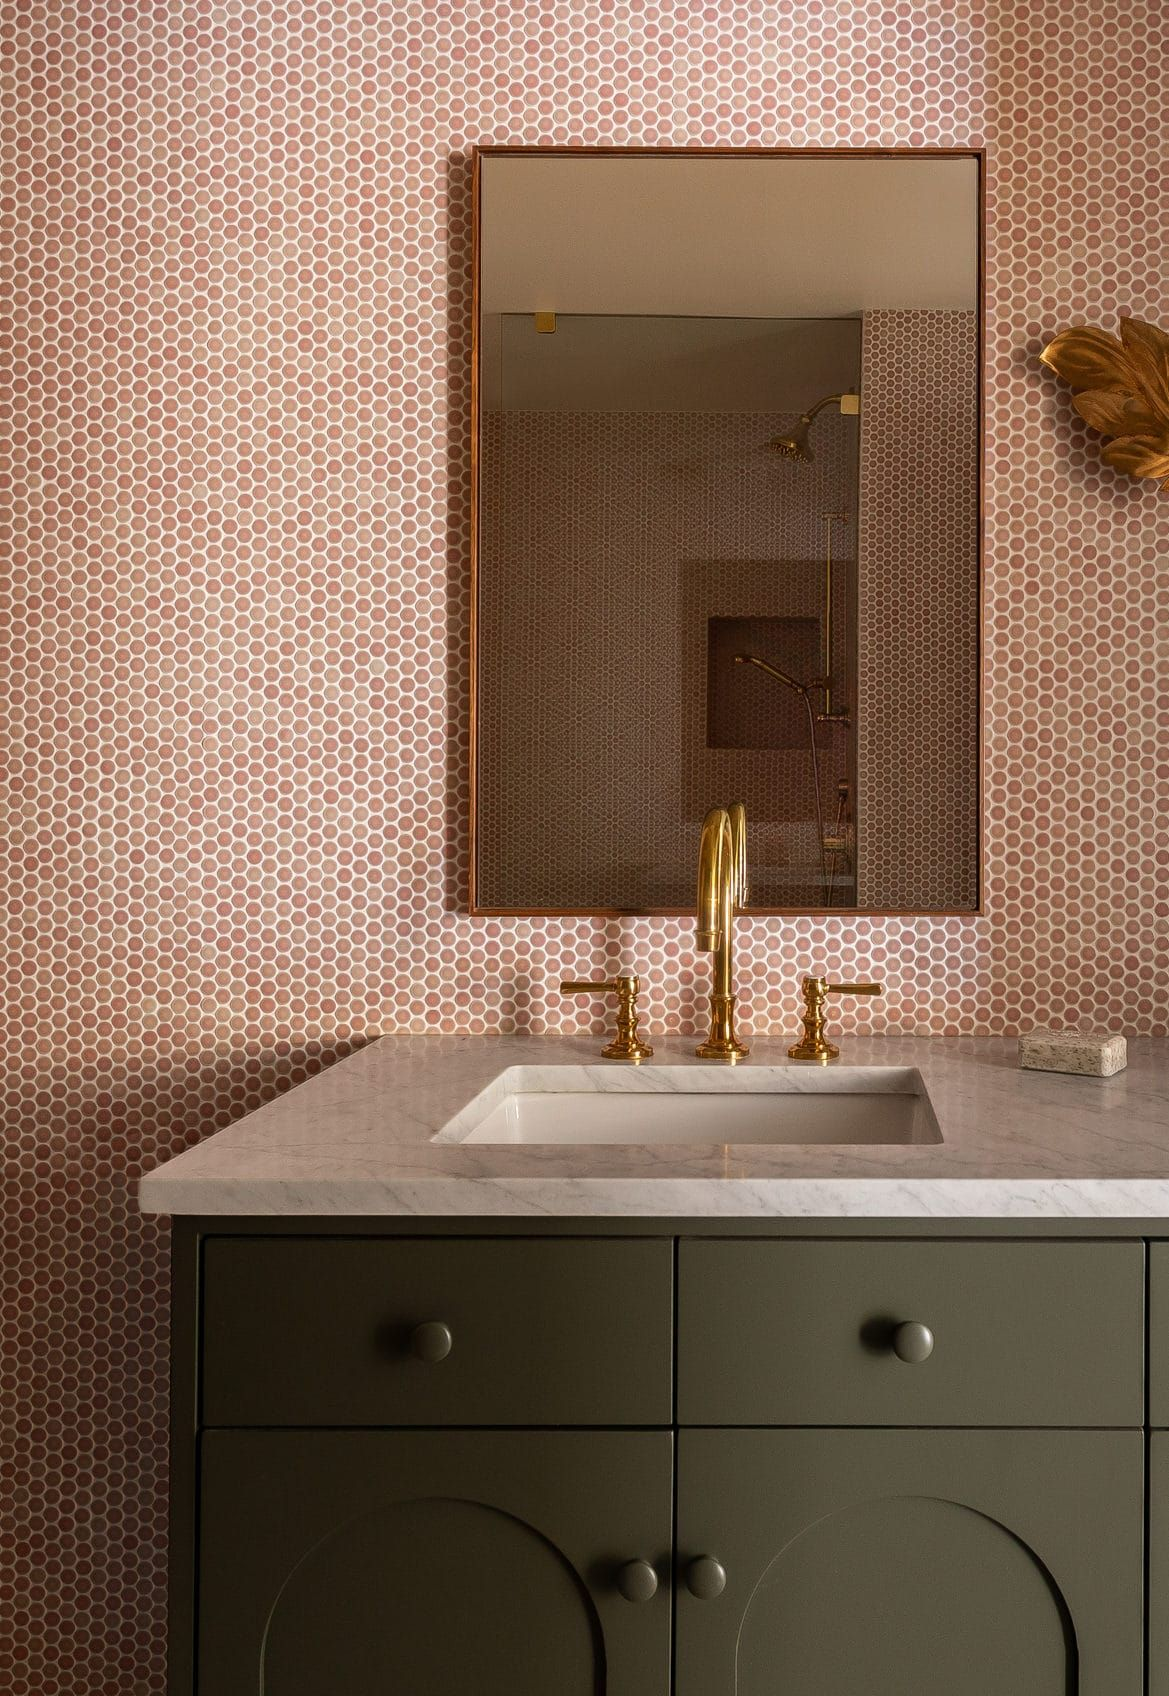 Re Style Your Tile The 99 Cent Solution To Elevate Your Space Bobby Berk In 2020 Pink Bathroom Tiles Tile Backsplash Bathroom Tile Bathroom